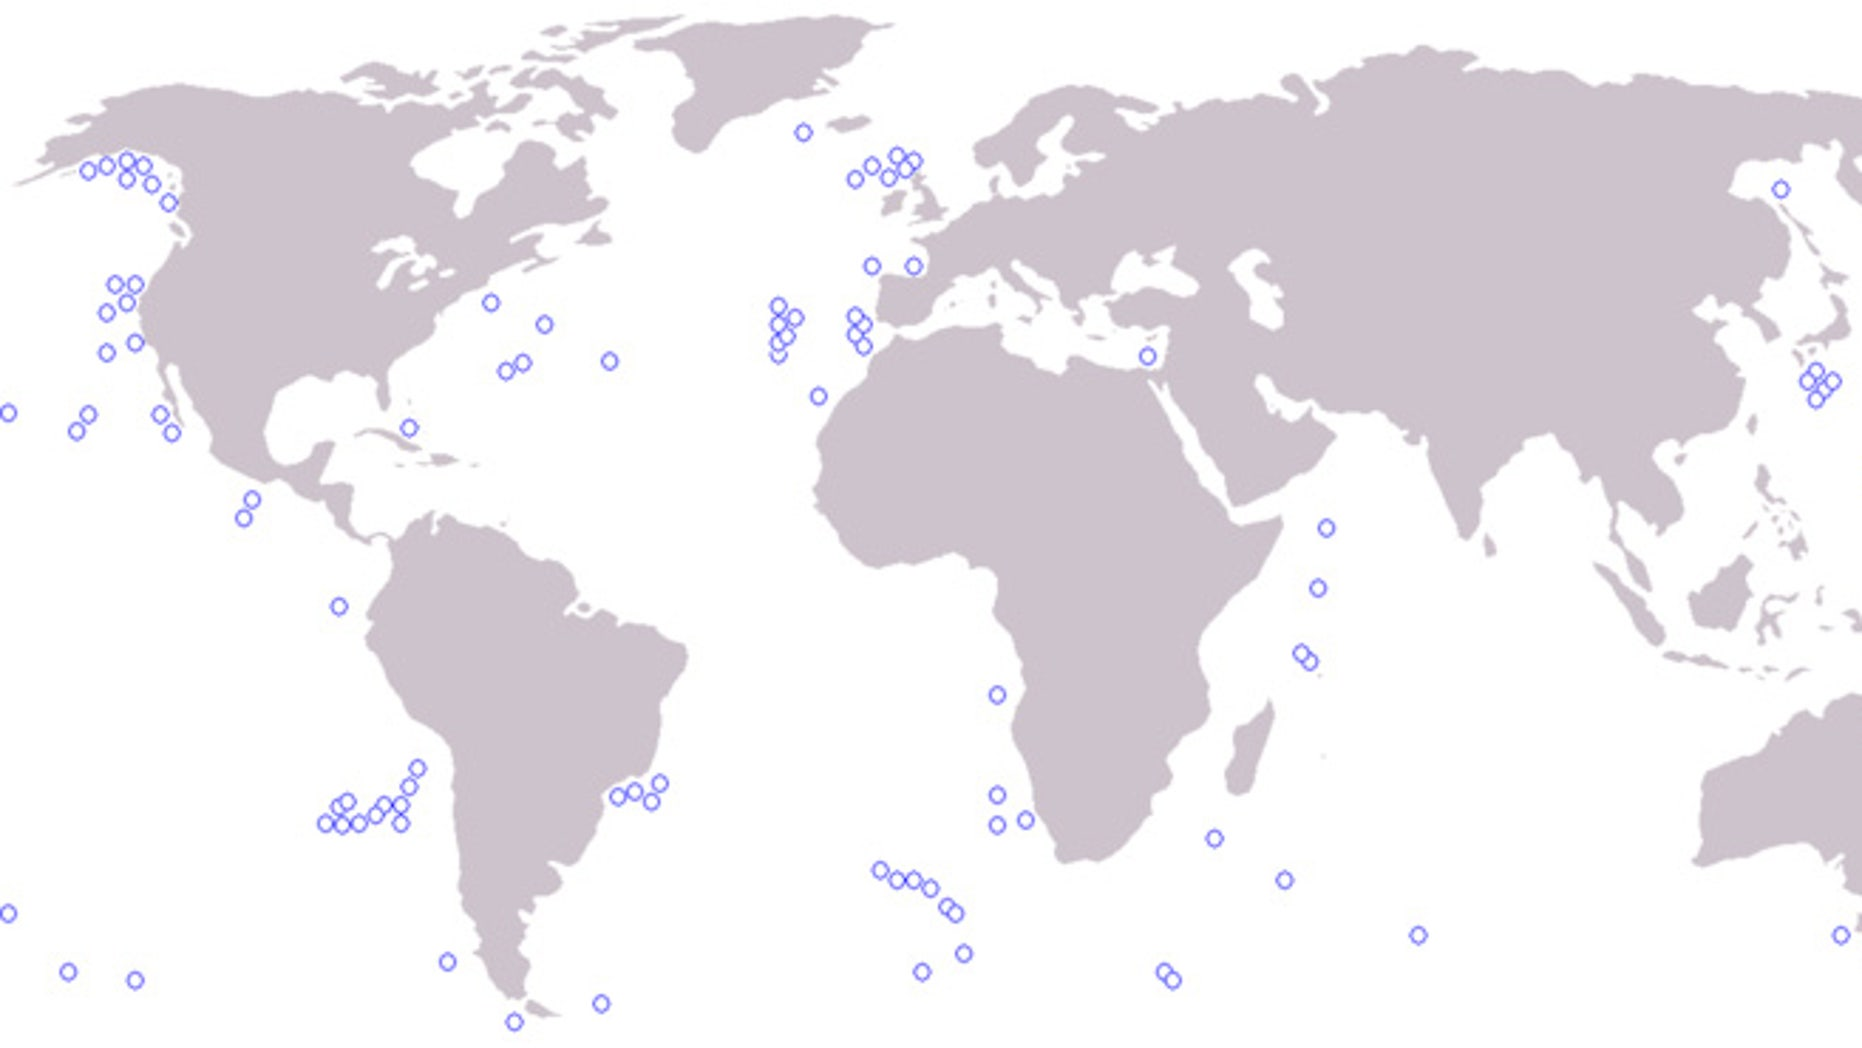 A partial mapping of some of the world's major seamounts